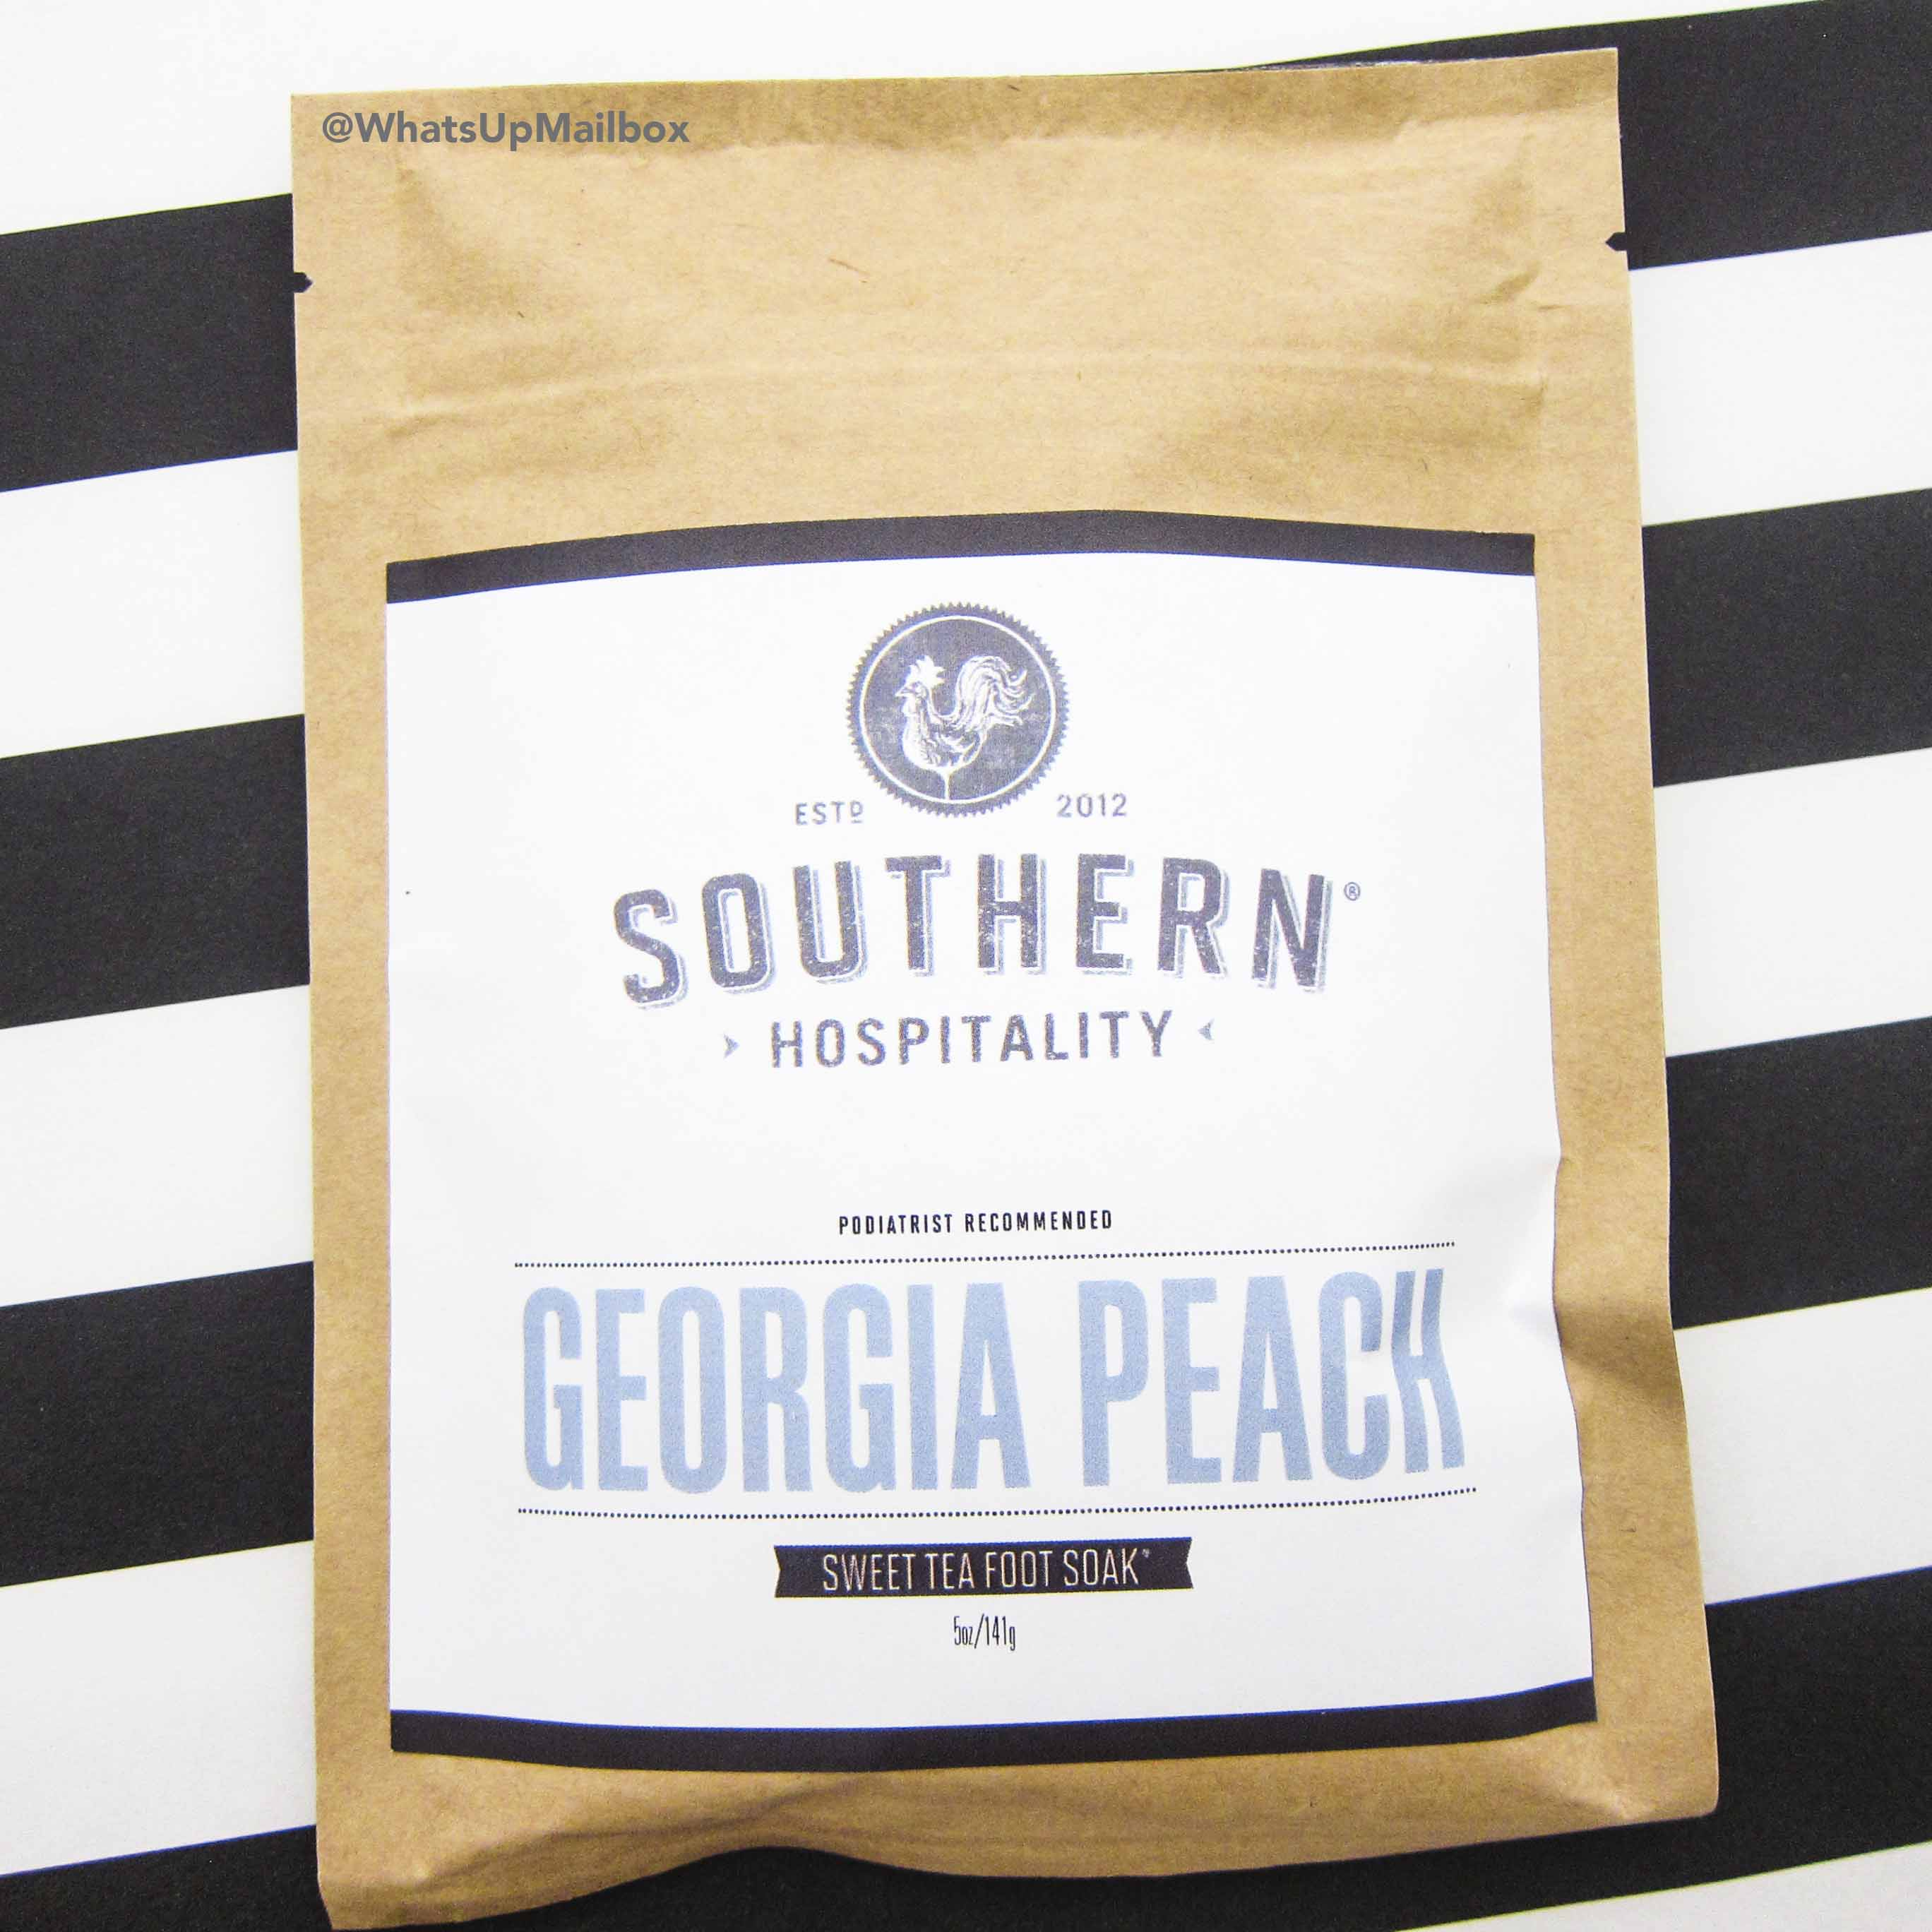 Southern Hospitality - Sweet Tea Foot Soak in Georgia Peach